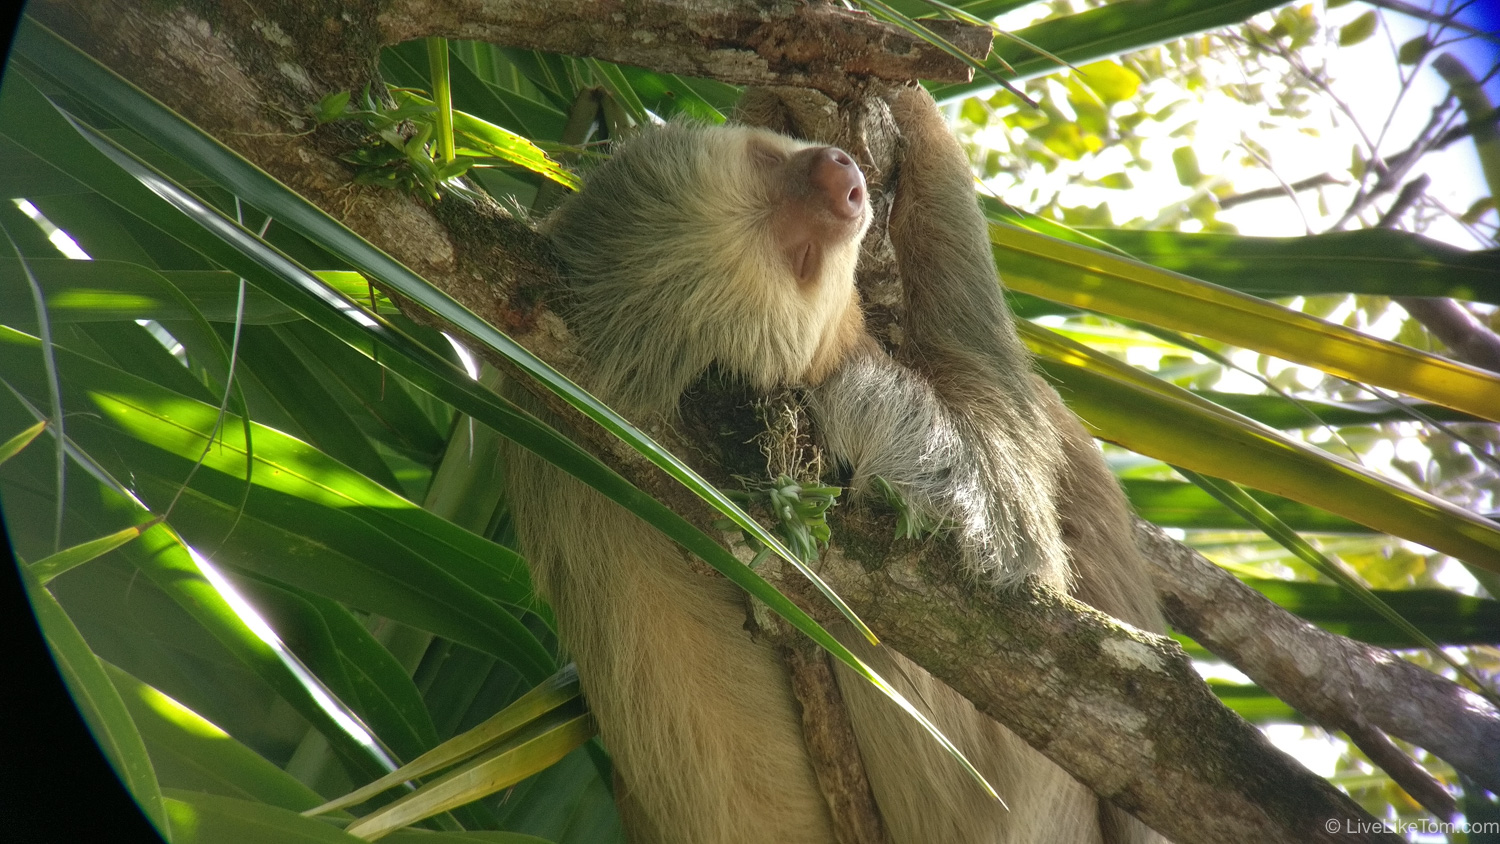 sloth luiaard in costa rica